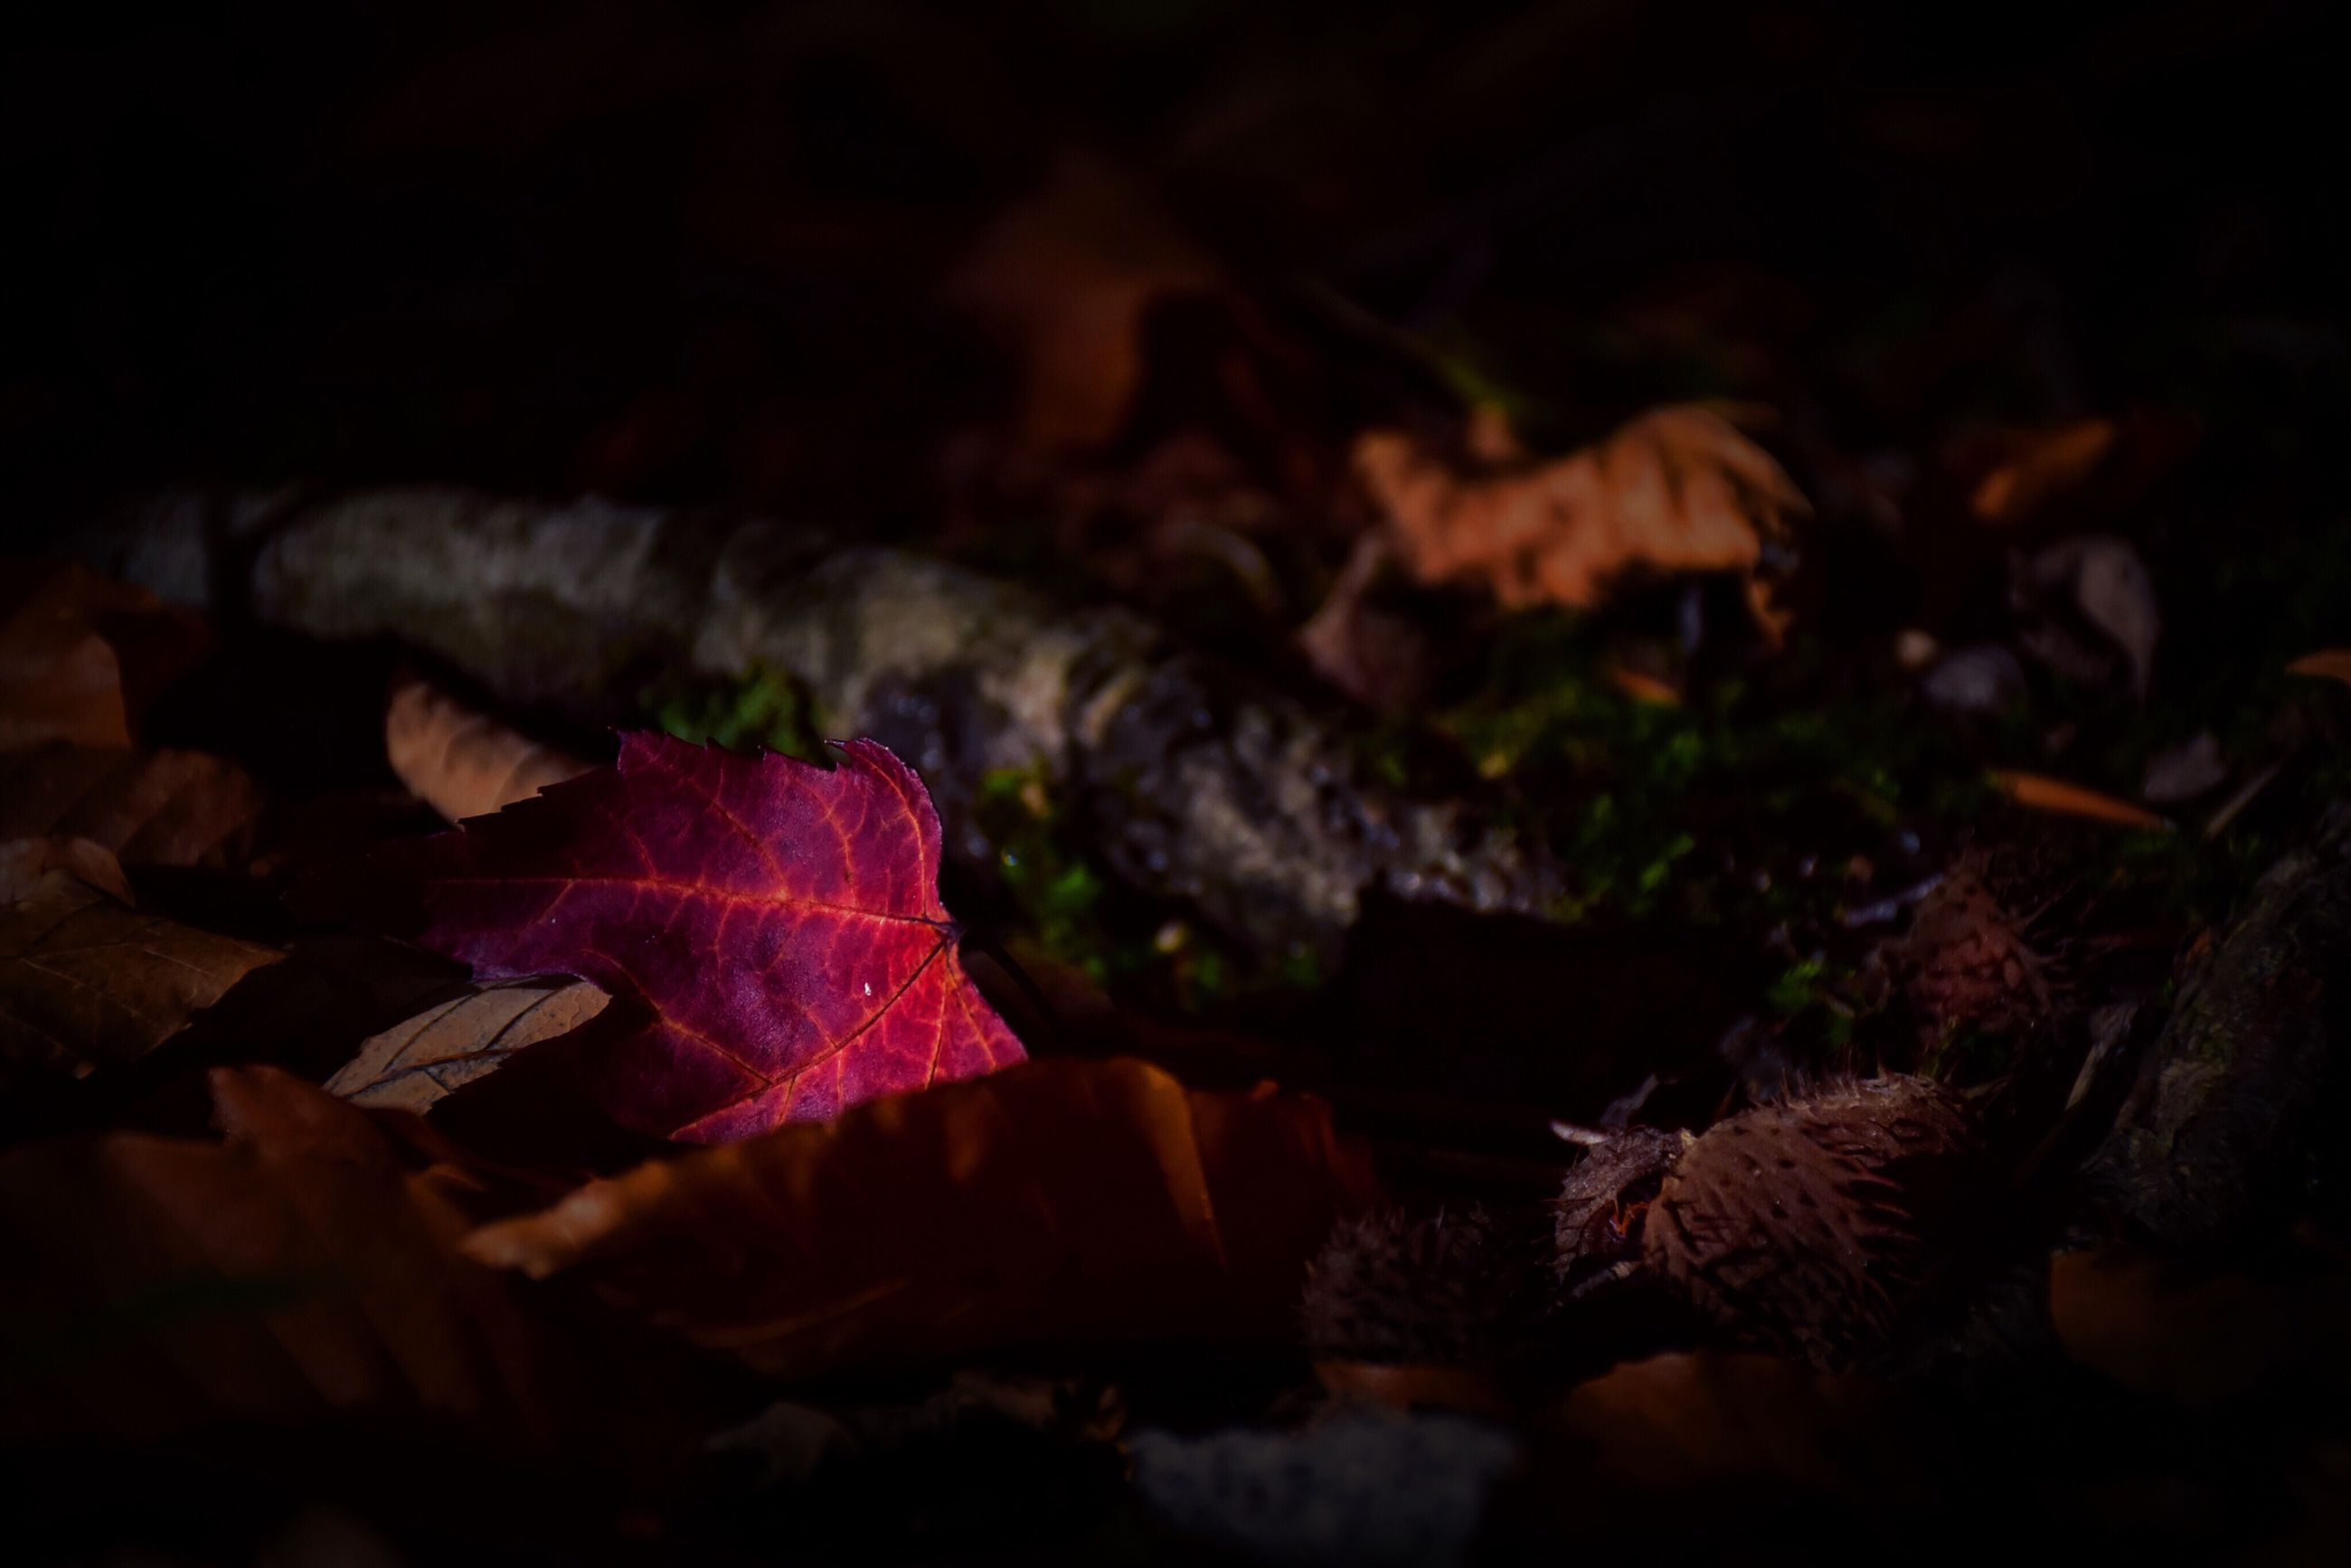 leaf, change, autumn, leaves, no people, nature, maple leaf, beauty in nature, night, close-up, backgrounds, fragility, outdoors